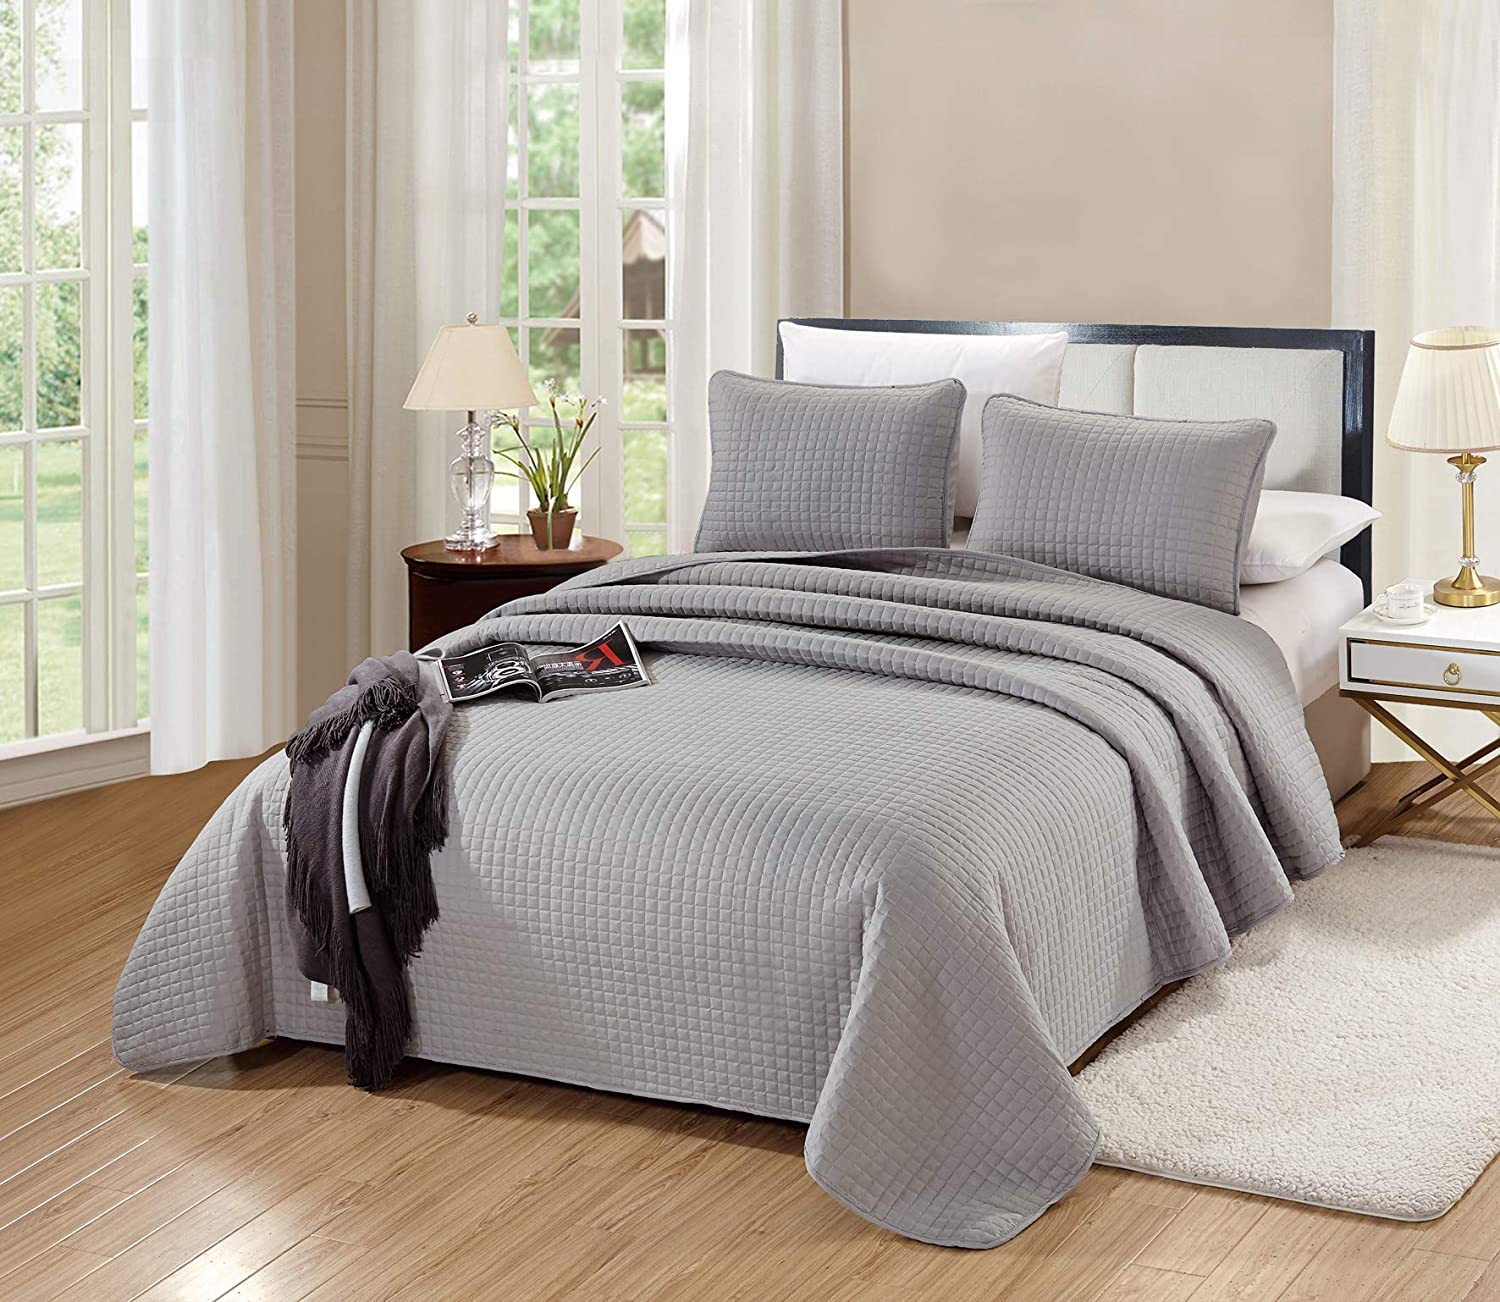 GrandLinen New Free Shipping 3-Piece Bedding Florence Quilt Qu Solid Sale special price Grey Gray Set